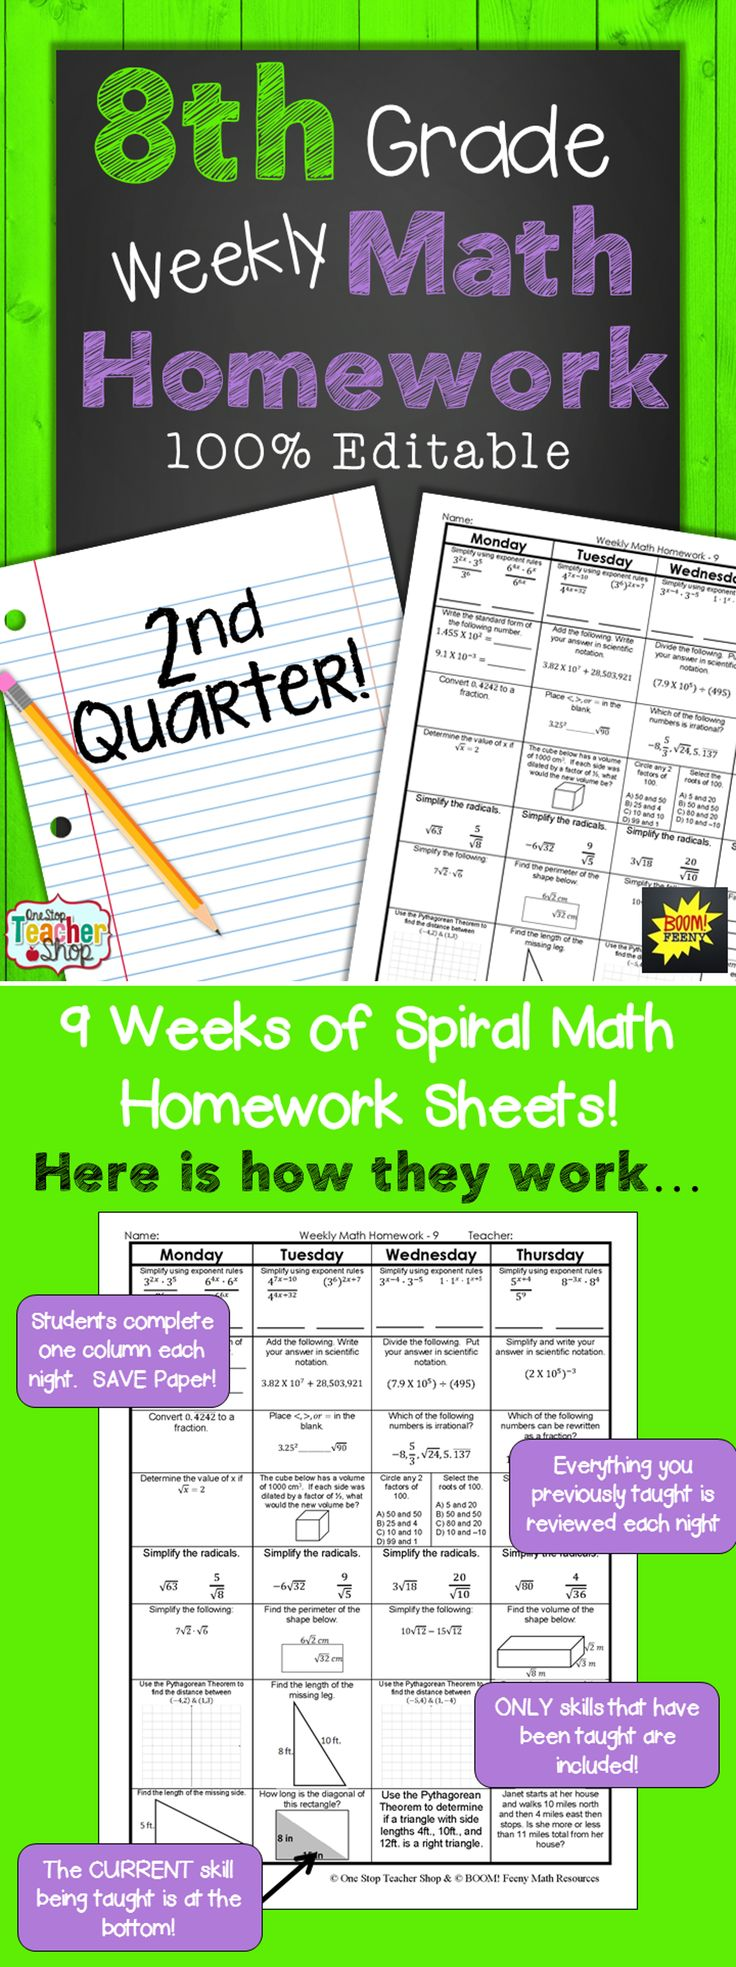 EIGHTH GRADE Spiral Math Homework, Warm up, or Math Review for the SECOND Quarter!! -- 100% EDITABLE -- Aligned with the 8th Grade Common Core Math Standards. ANSWER KEYS included. Paid